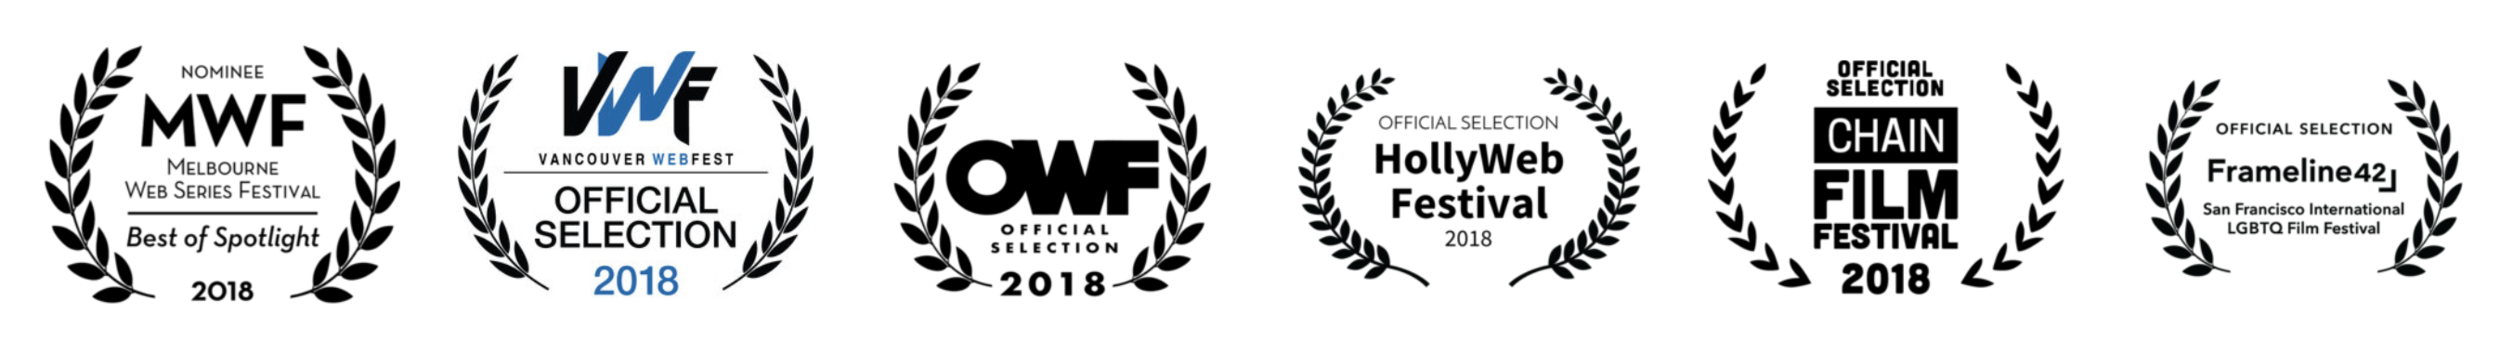 the feels, a web series about a bisexual guy, has been accepted to the melbourne web series festival, vancouver web fest, out web fest, hollyweb festival, chain film festival, and frameline san francisco international lgbtq film festival.